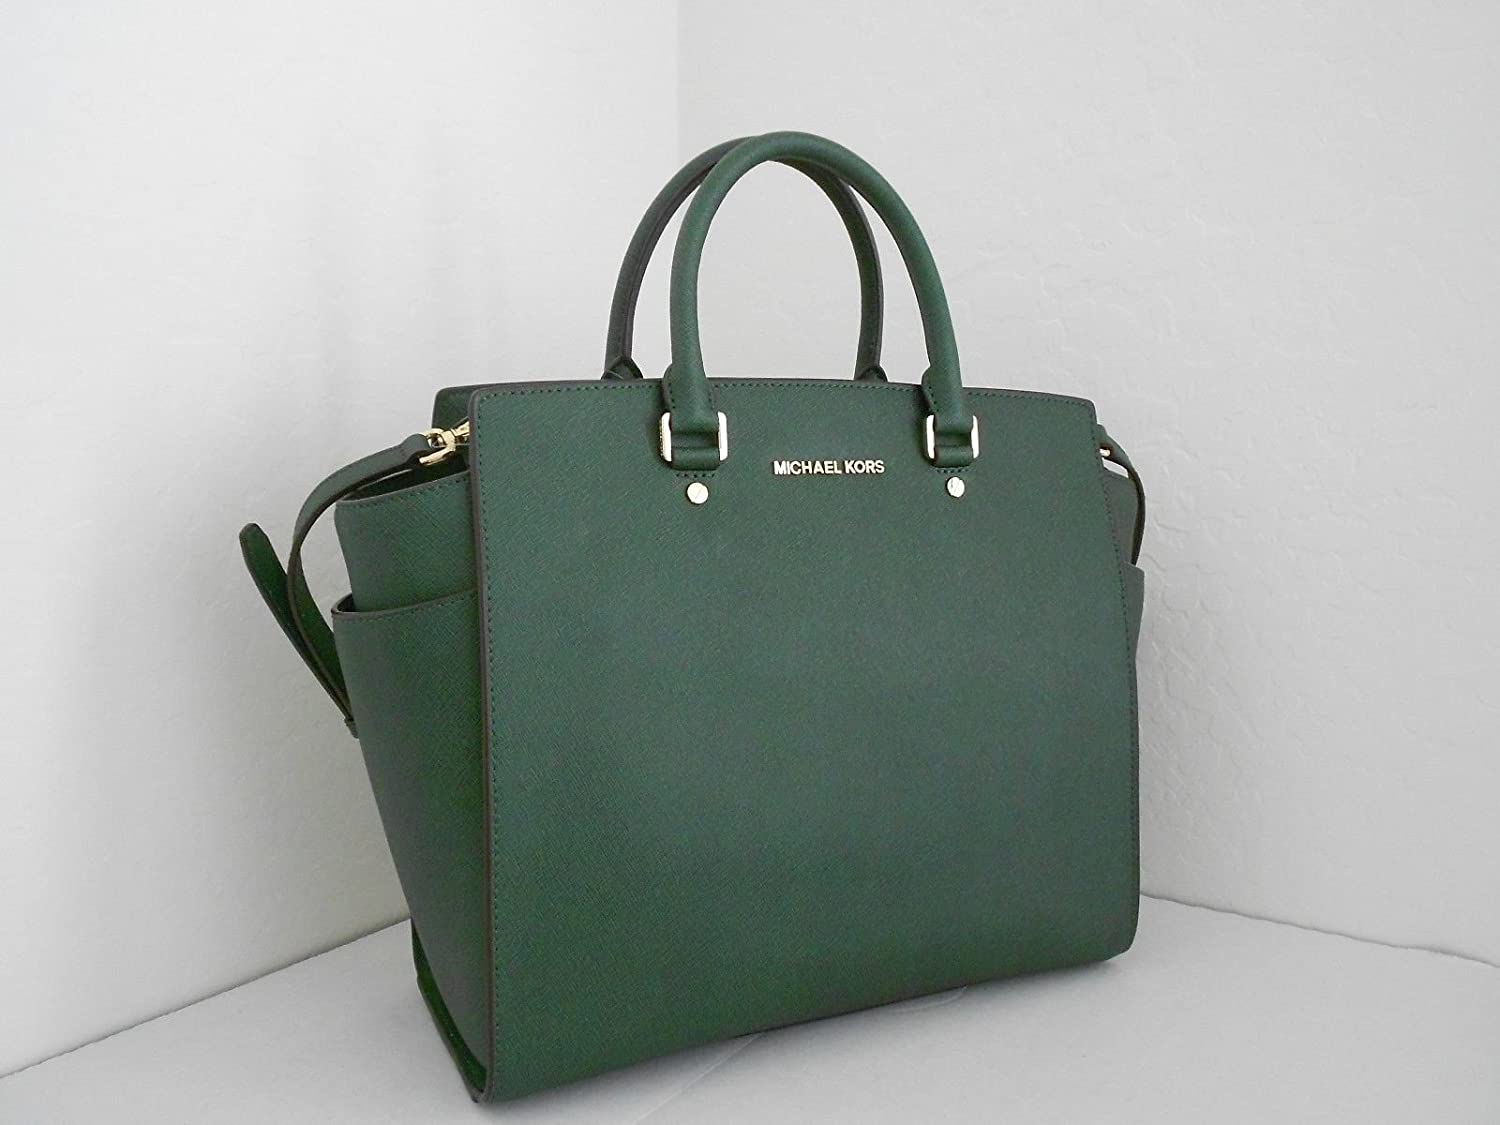 cc70f161c1 Amazon.com  Michael Kors Selma Large NS Tote Saffiano Malachite Leather   Shoes